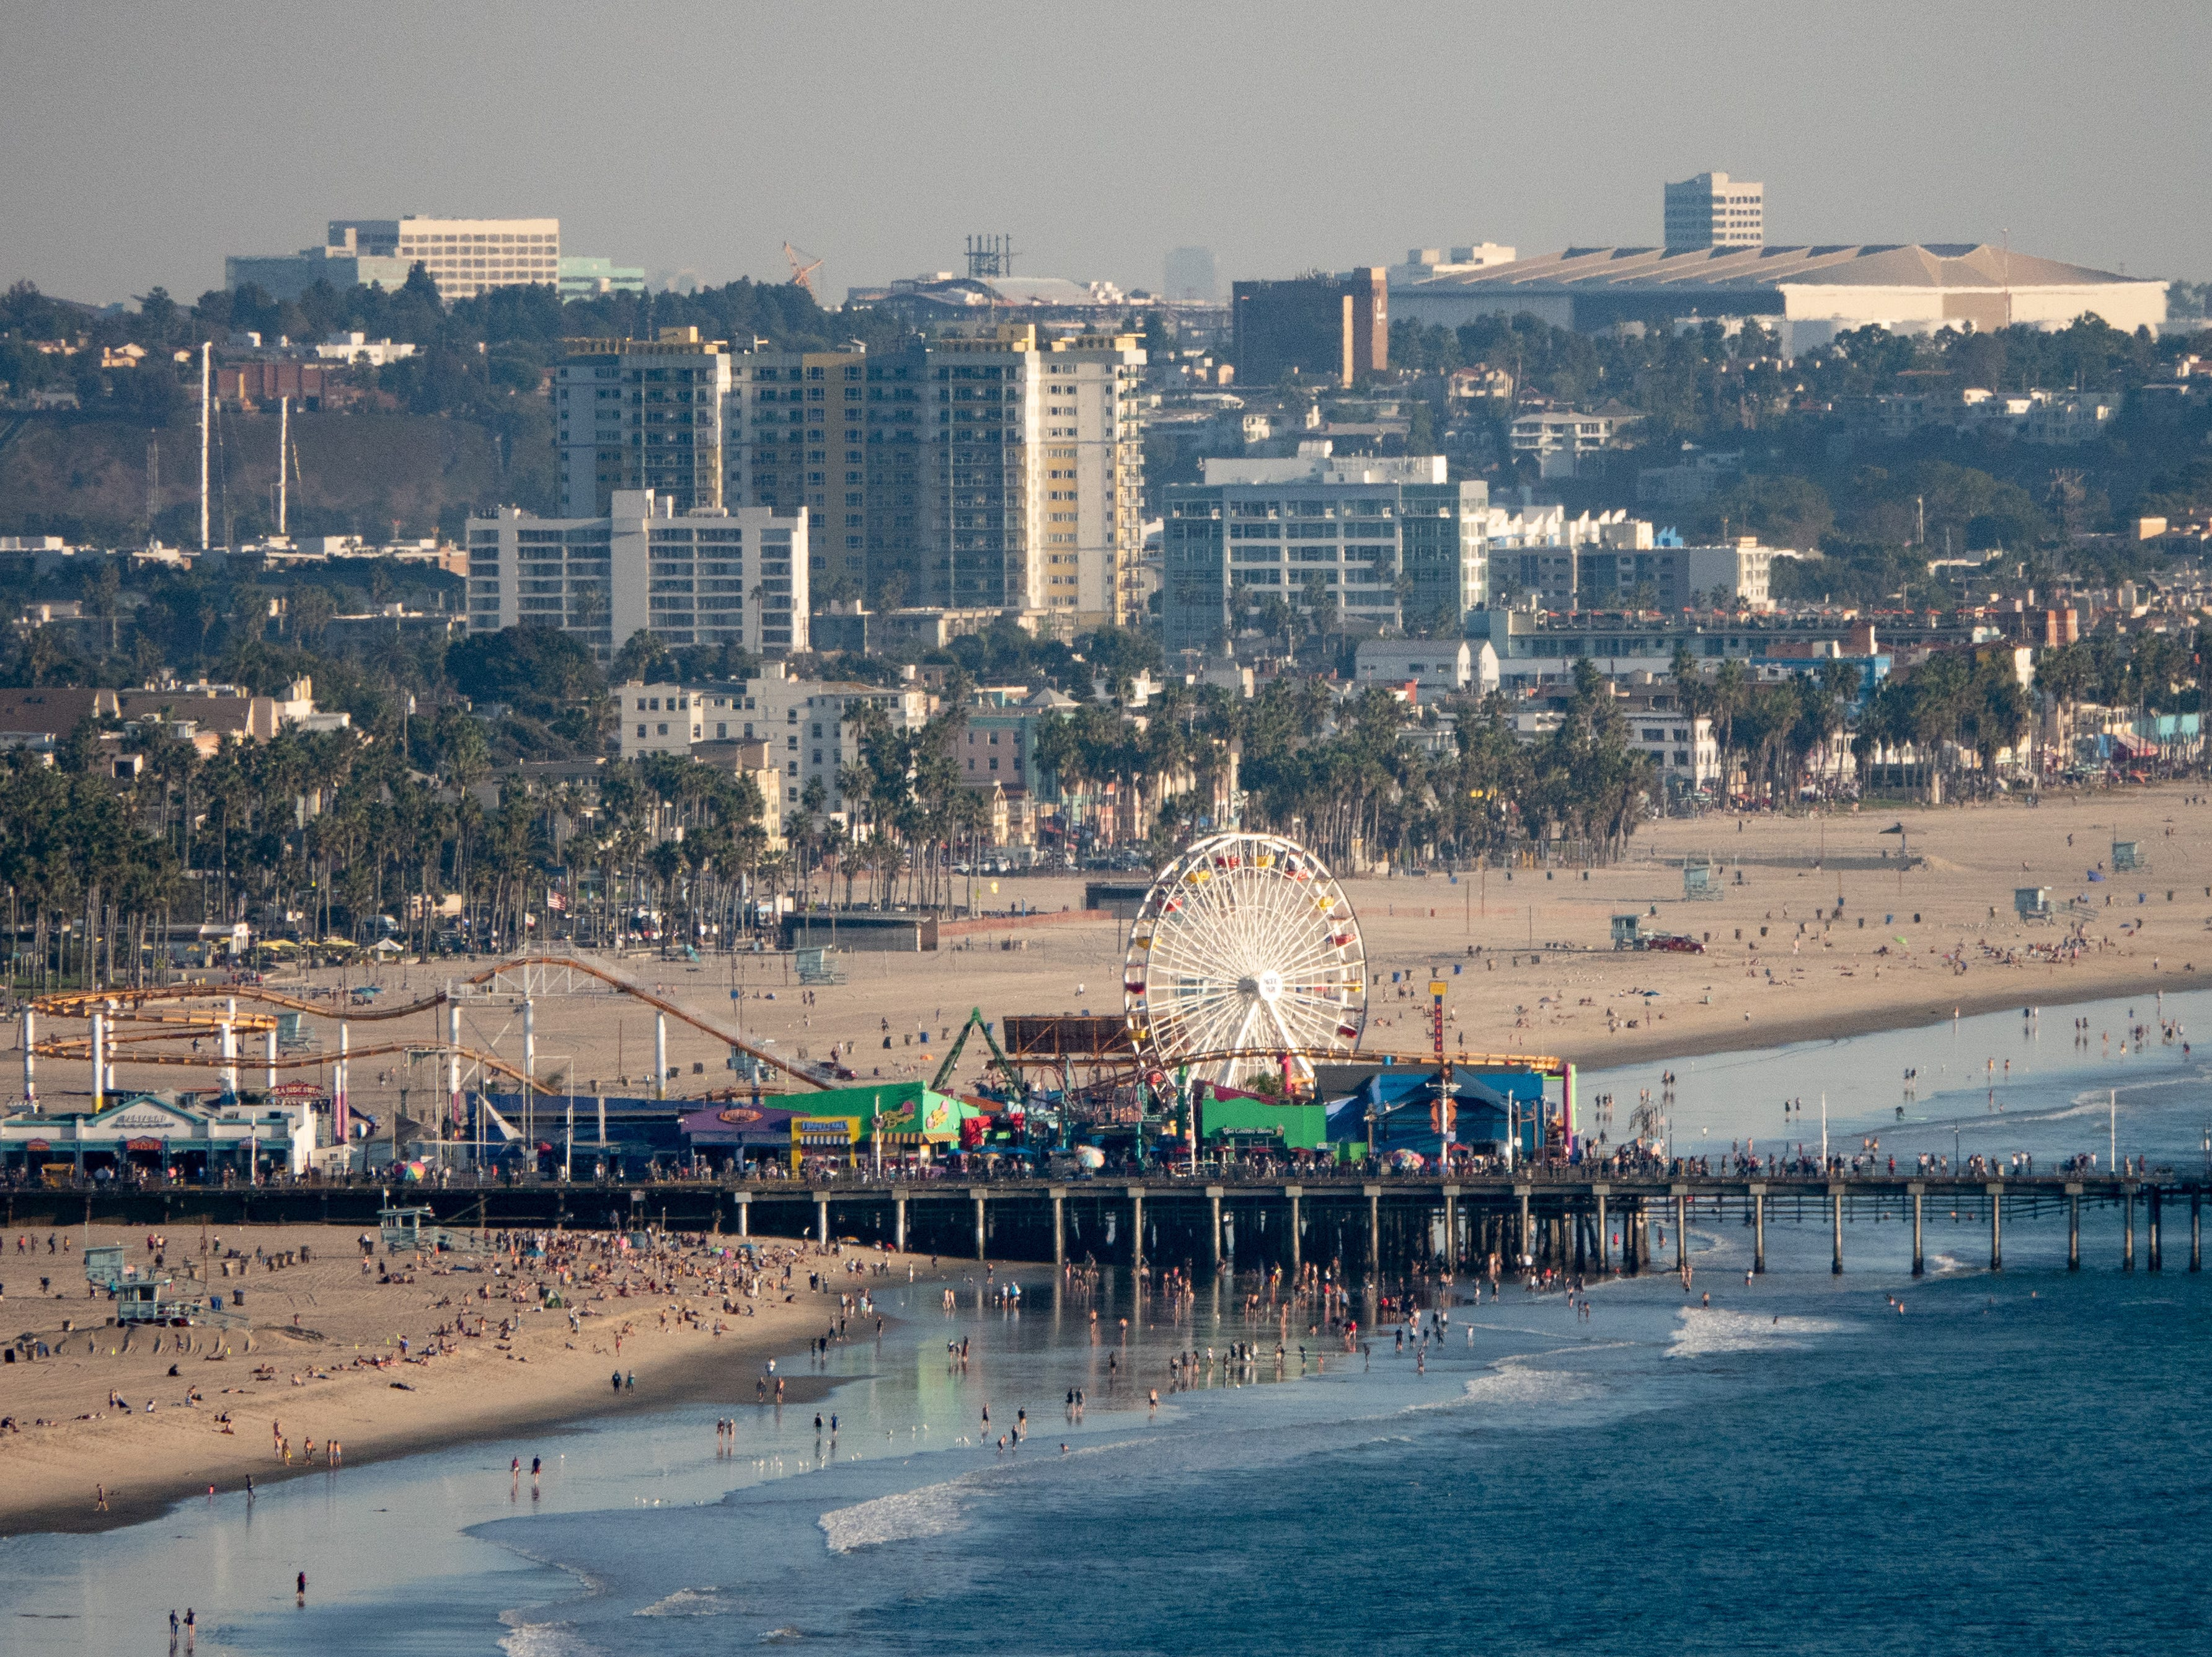 An overhead shot of the Santa Monica Pier and Pacific Park from nearby Pacific Palisades